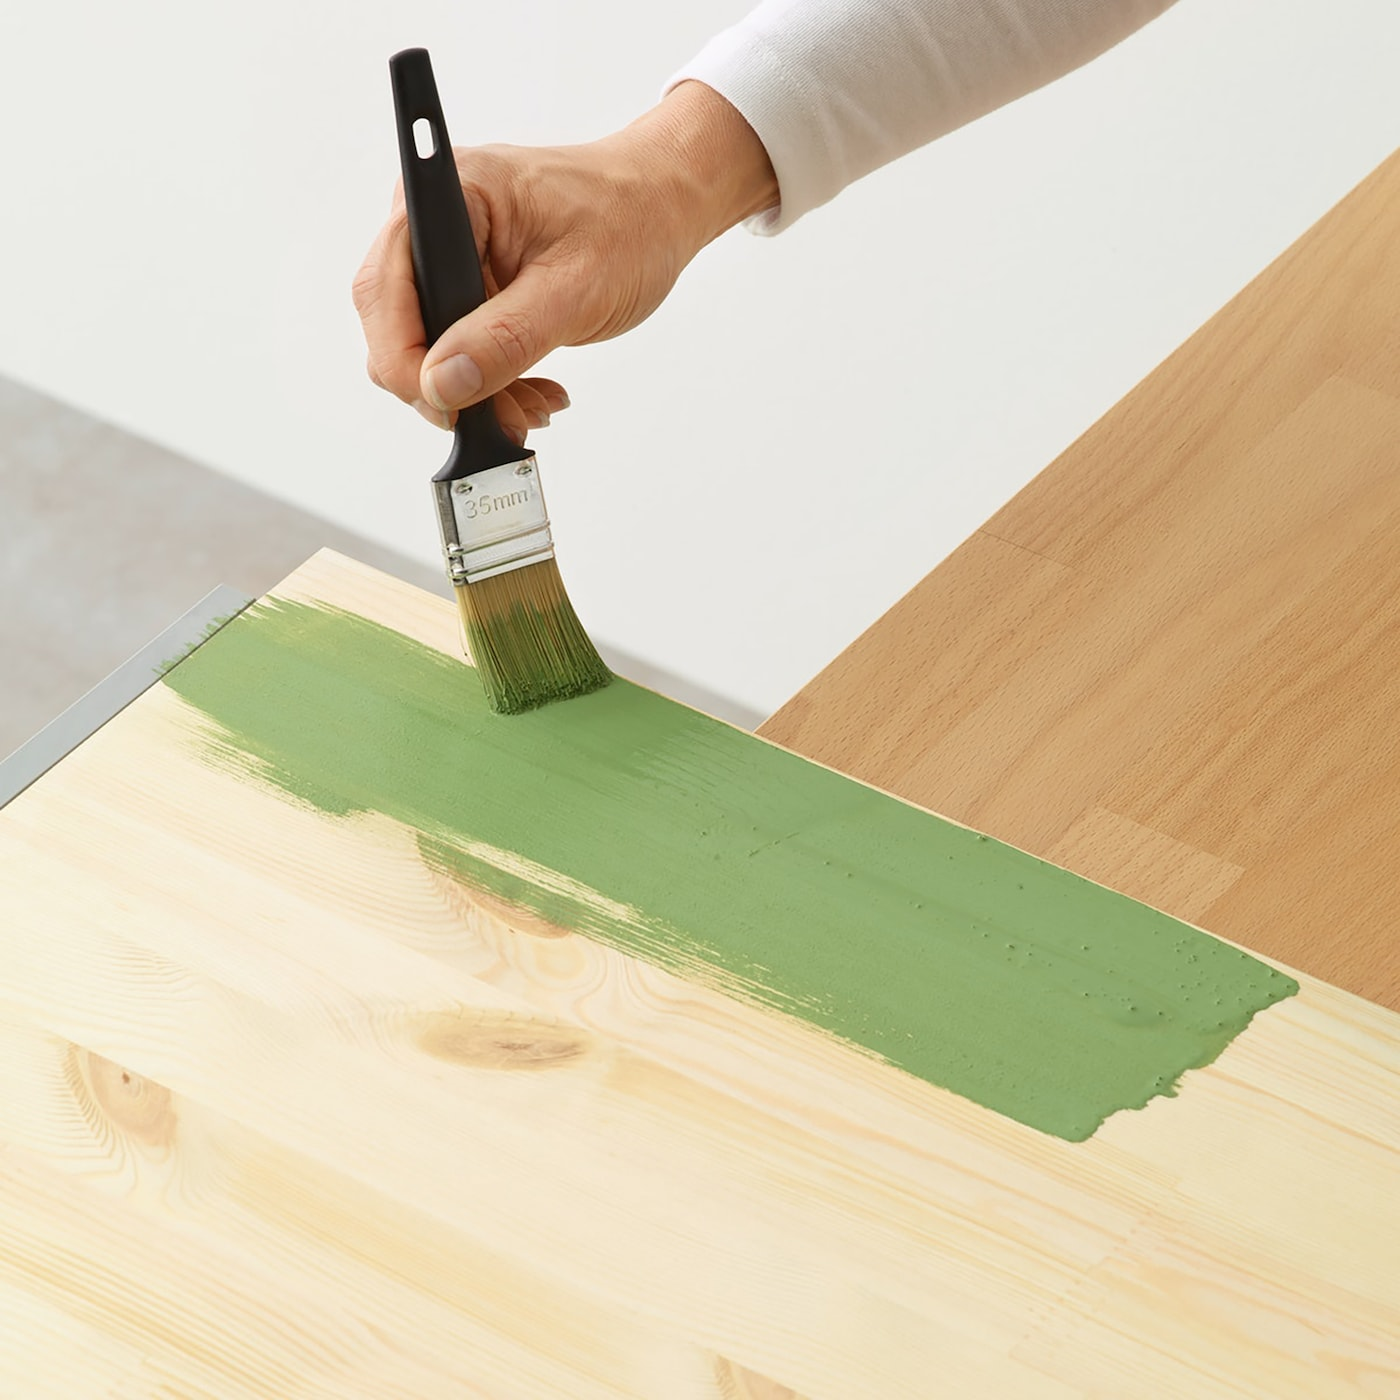 A FIXA paintbrush used to hand paint a wooden surface in green.